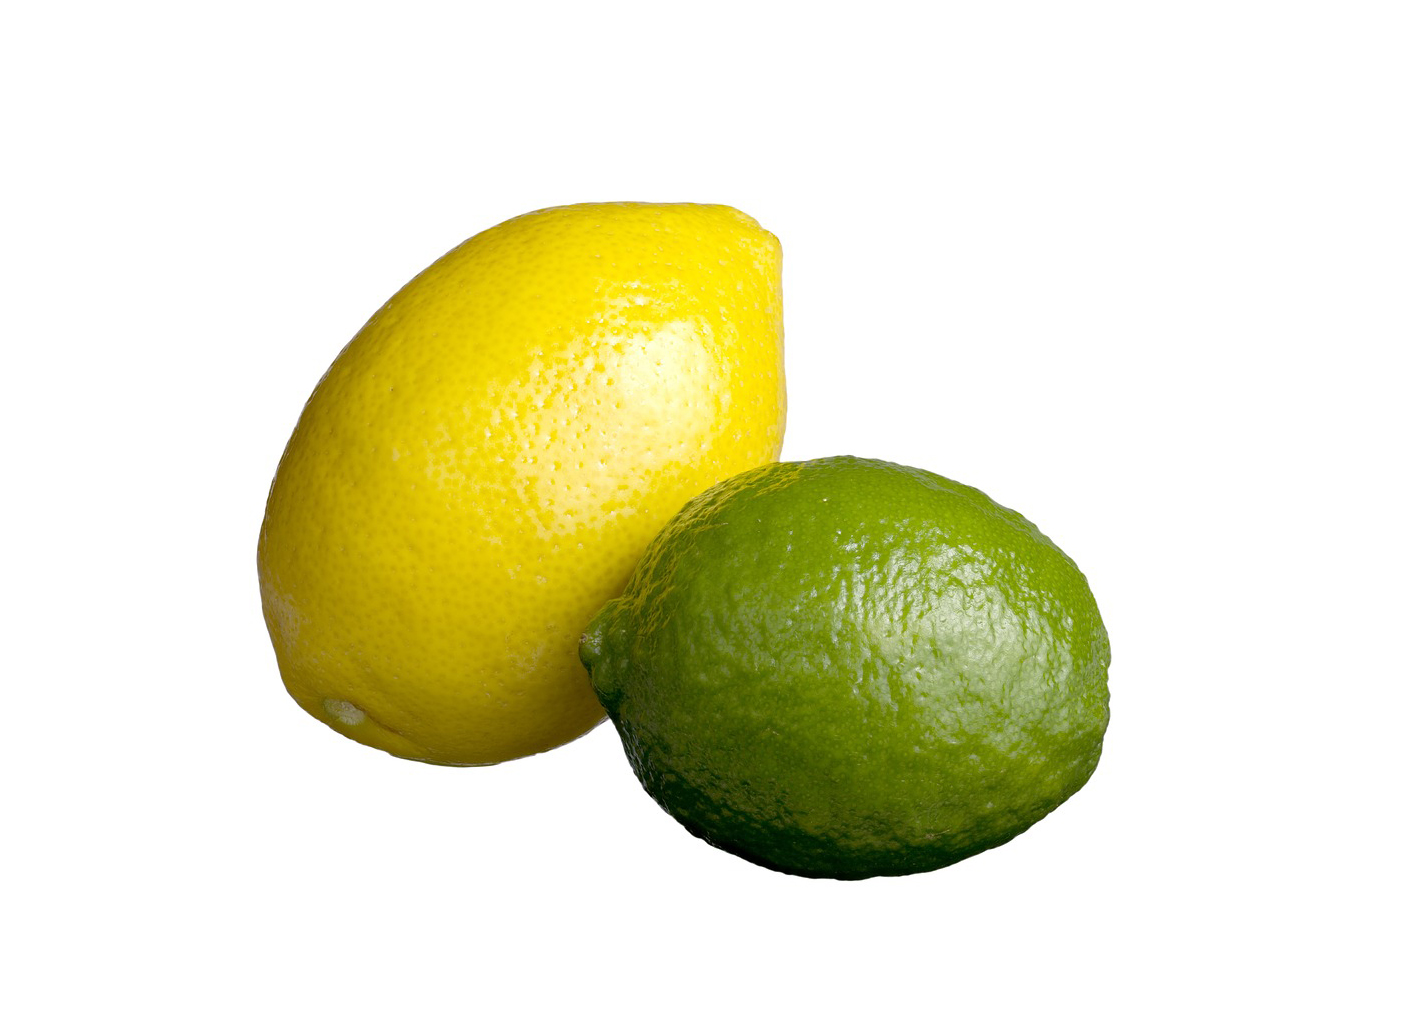 Foods To Eat To Get Rid Of Candida with lemon lime